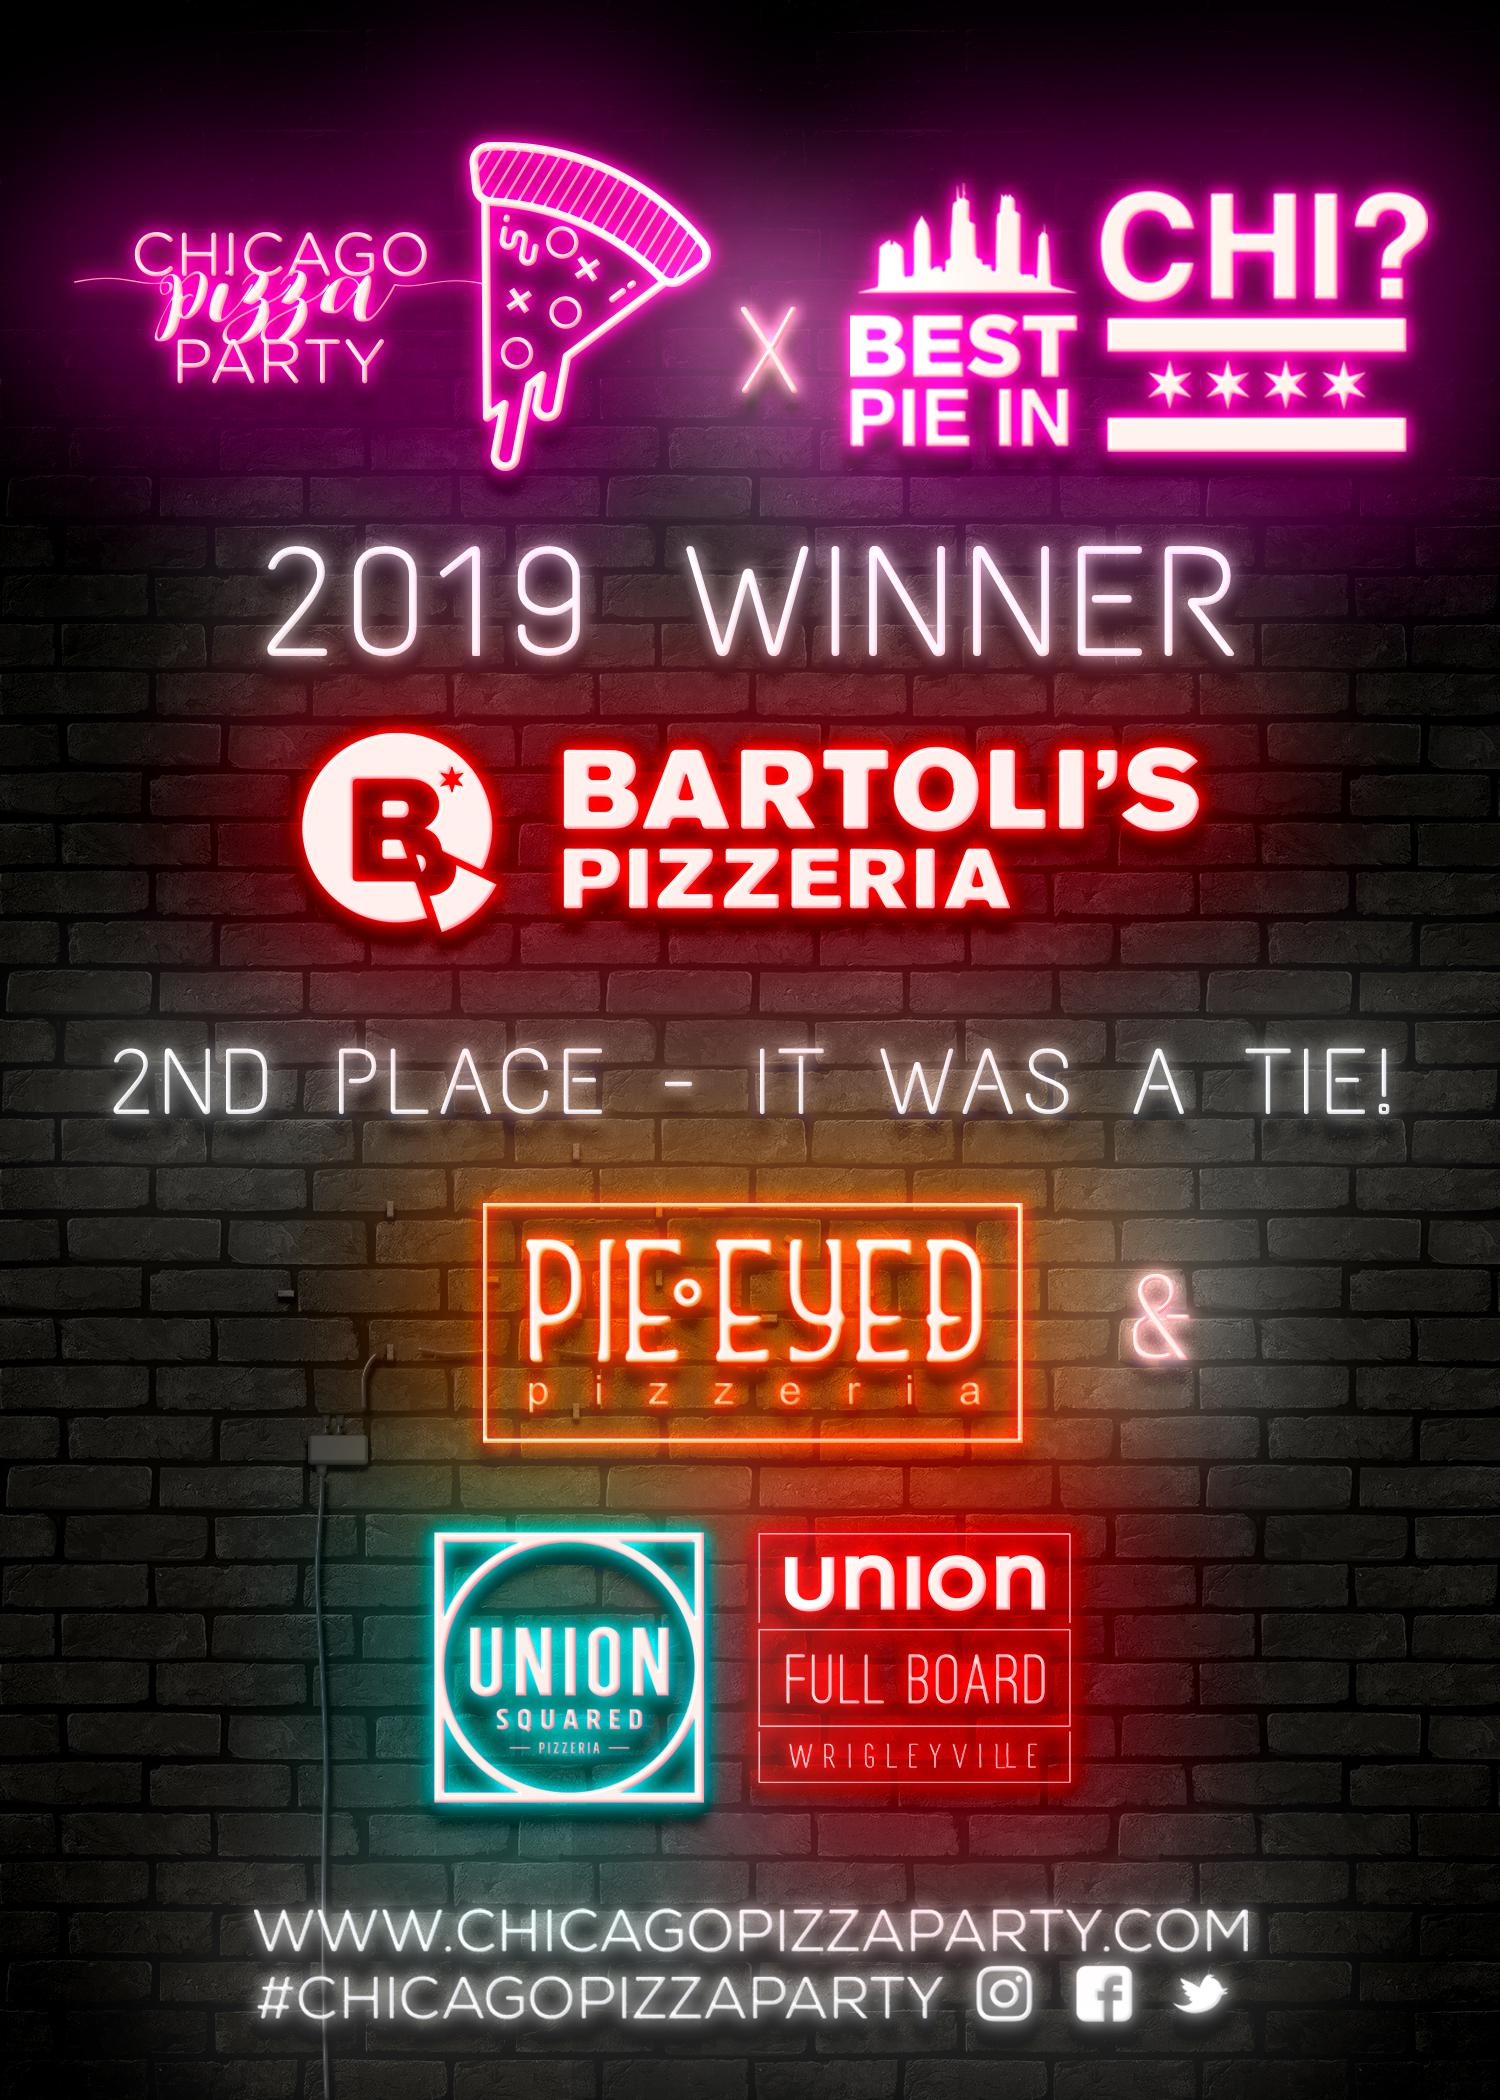 Best Pie in Chi 2019.jpg